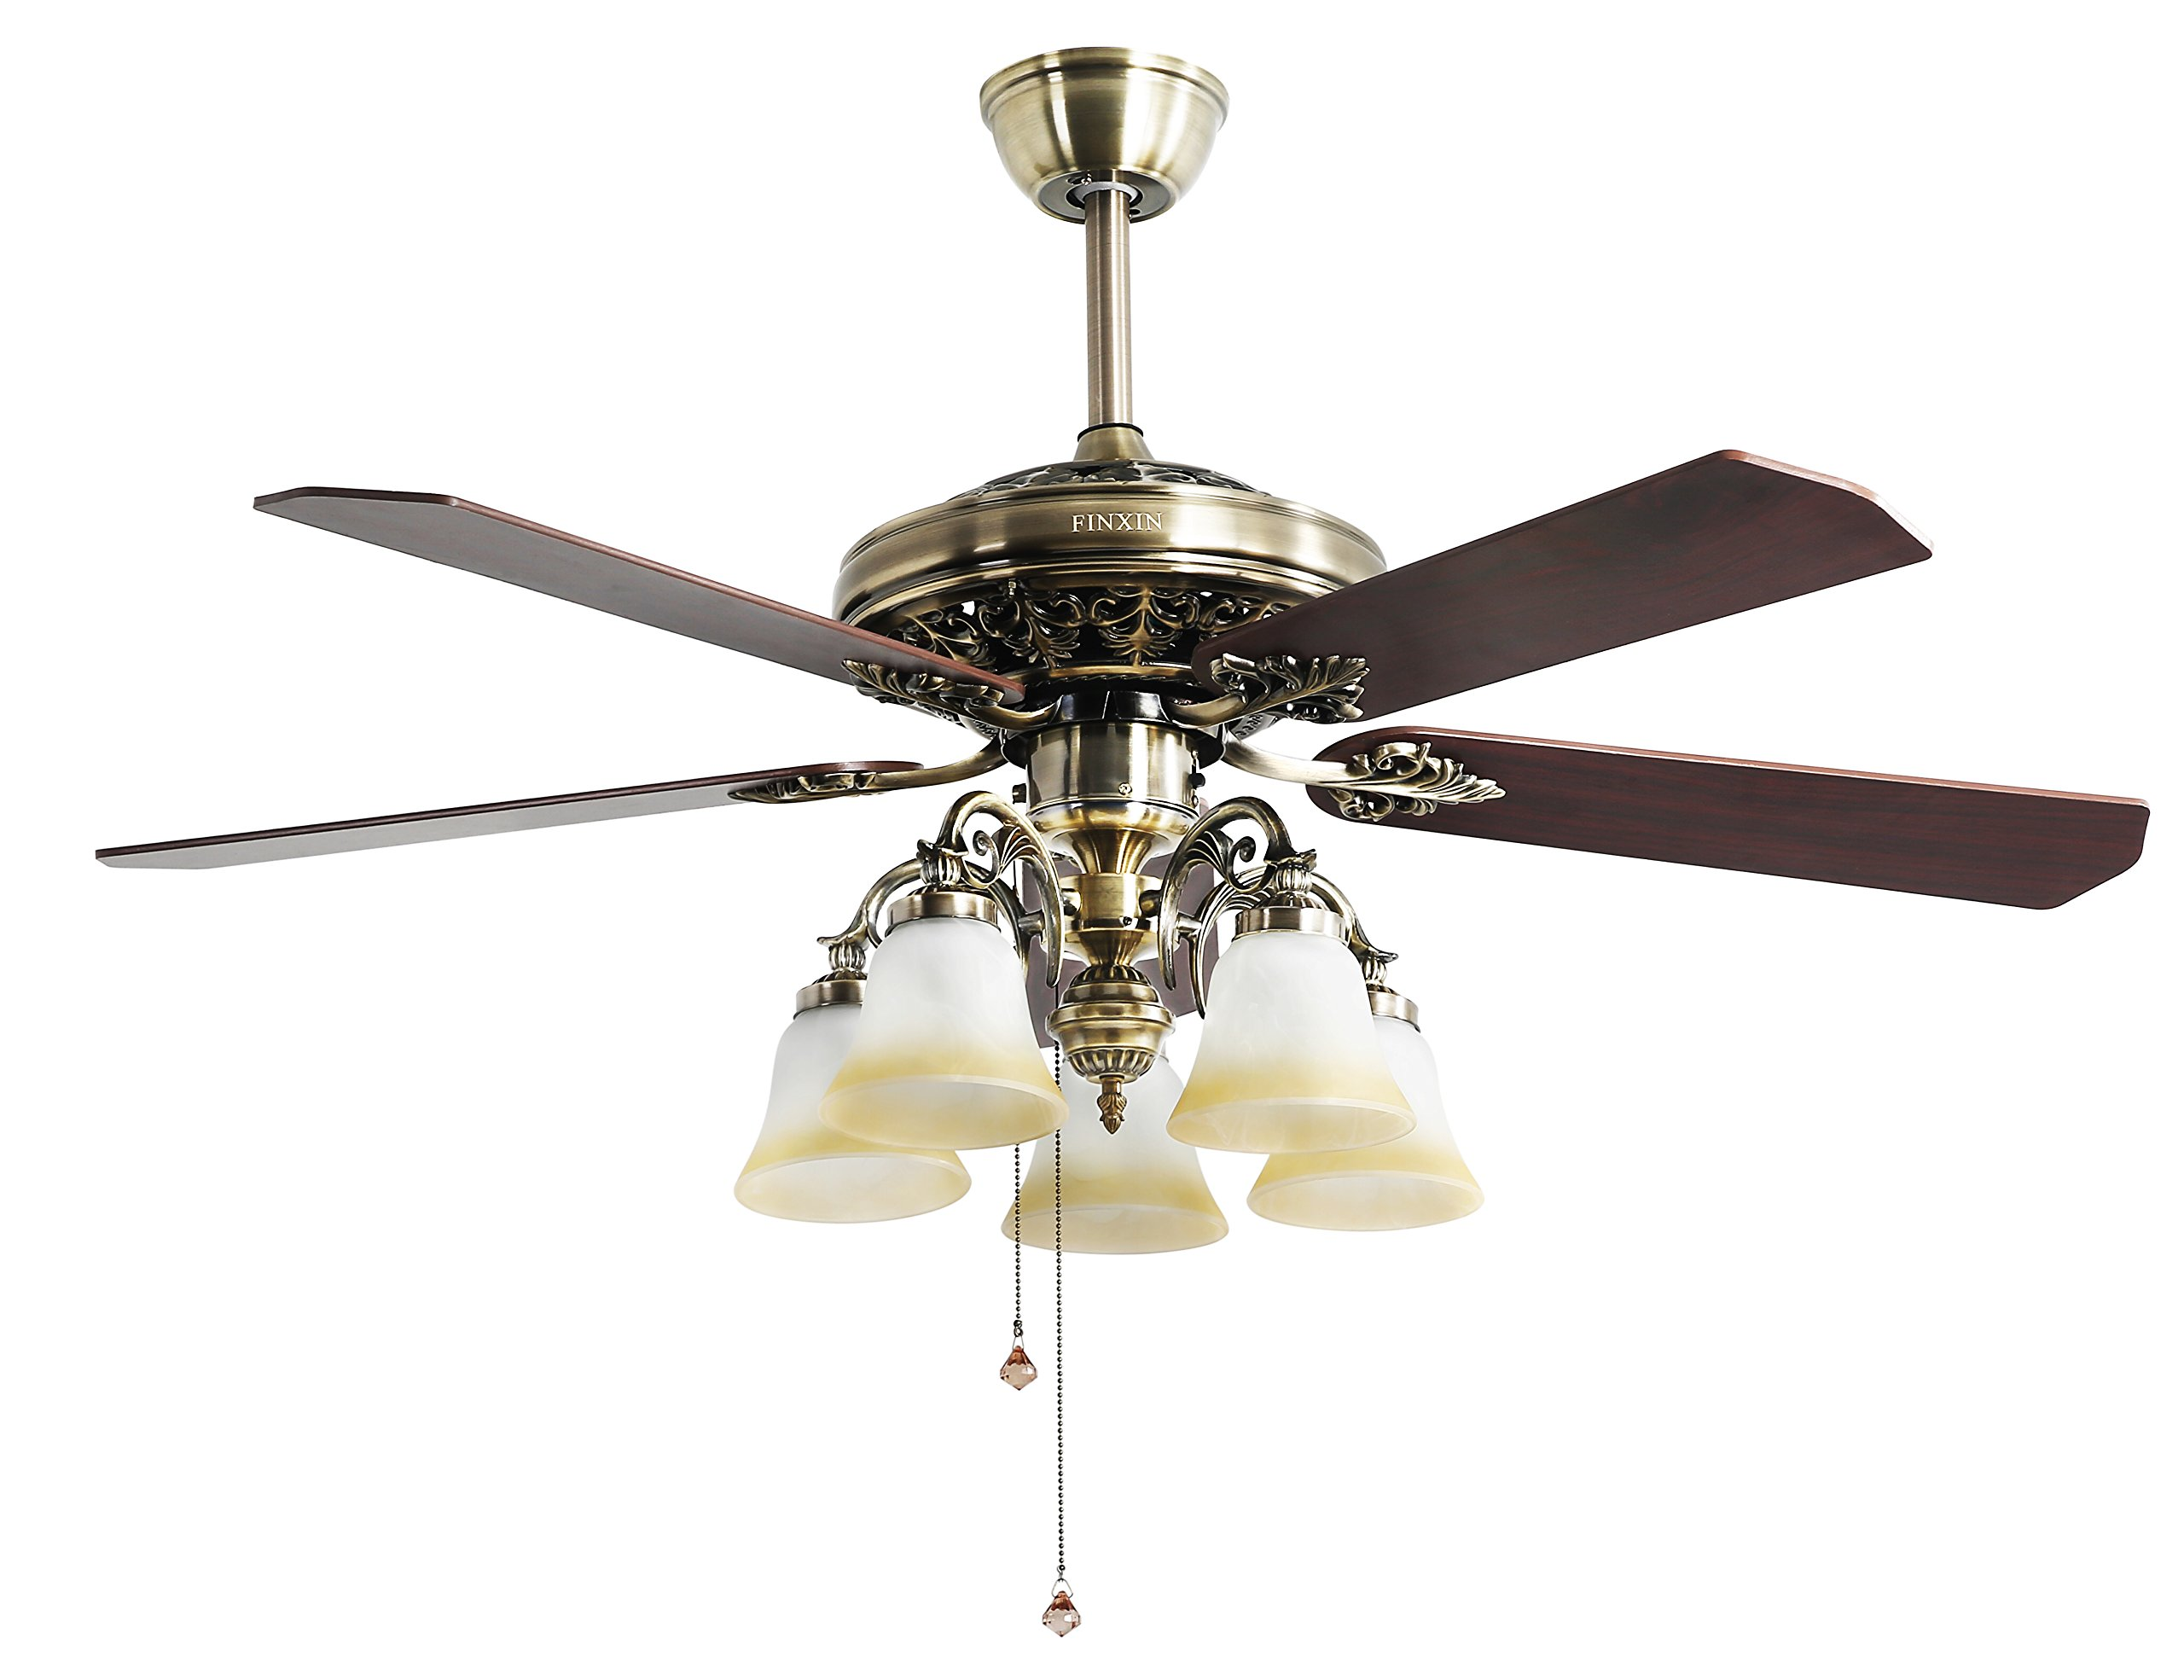 Indoor Ceiling Fan Light Fixtures FINXIN FXCF03 New Style New